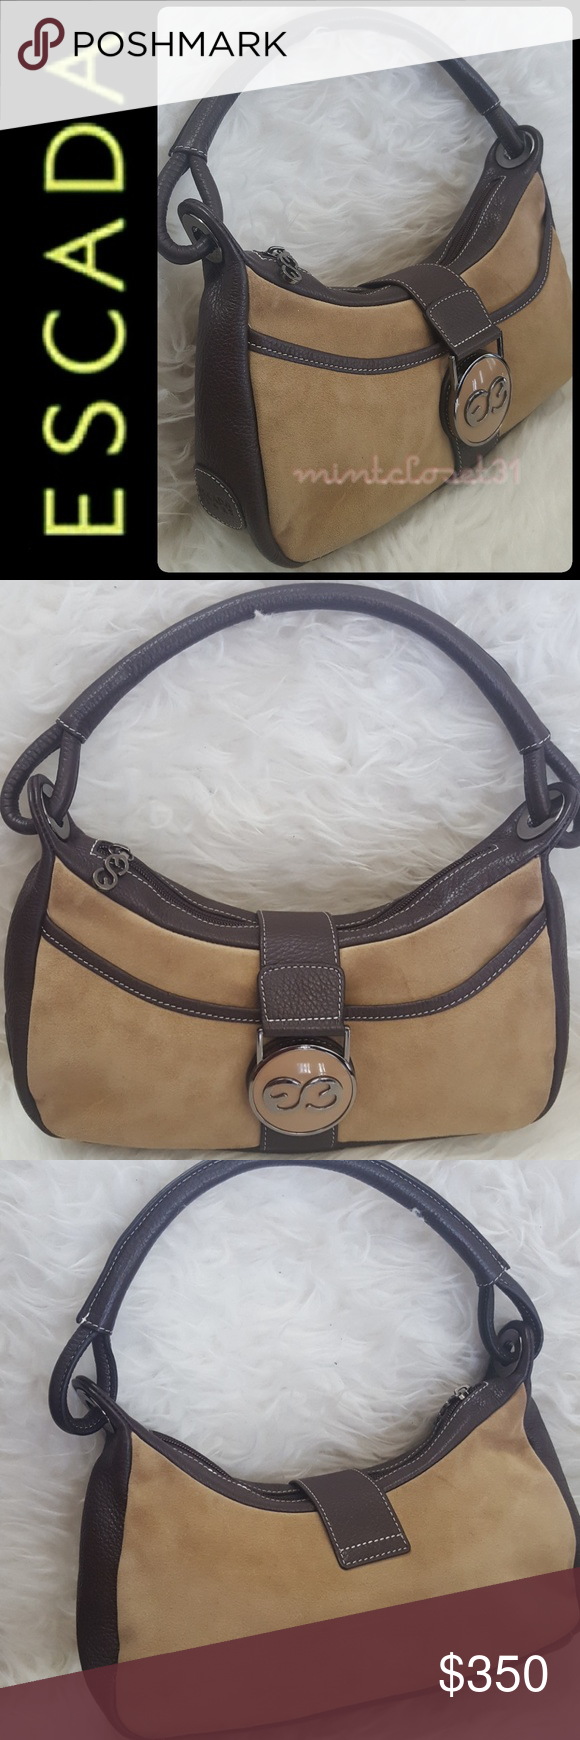 4762a87e69 Escada Sport Leather Suede Bag Escada Designer Purse in Gorgeous Sport  Edition! Features Luxurious Leather Suede with Silver Tone Hardware!